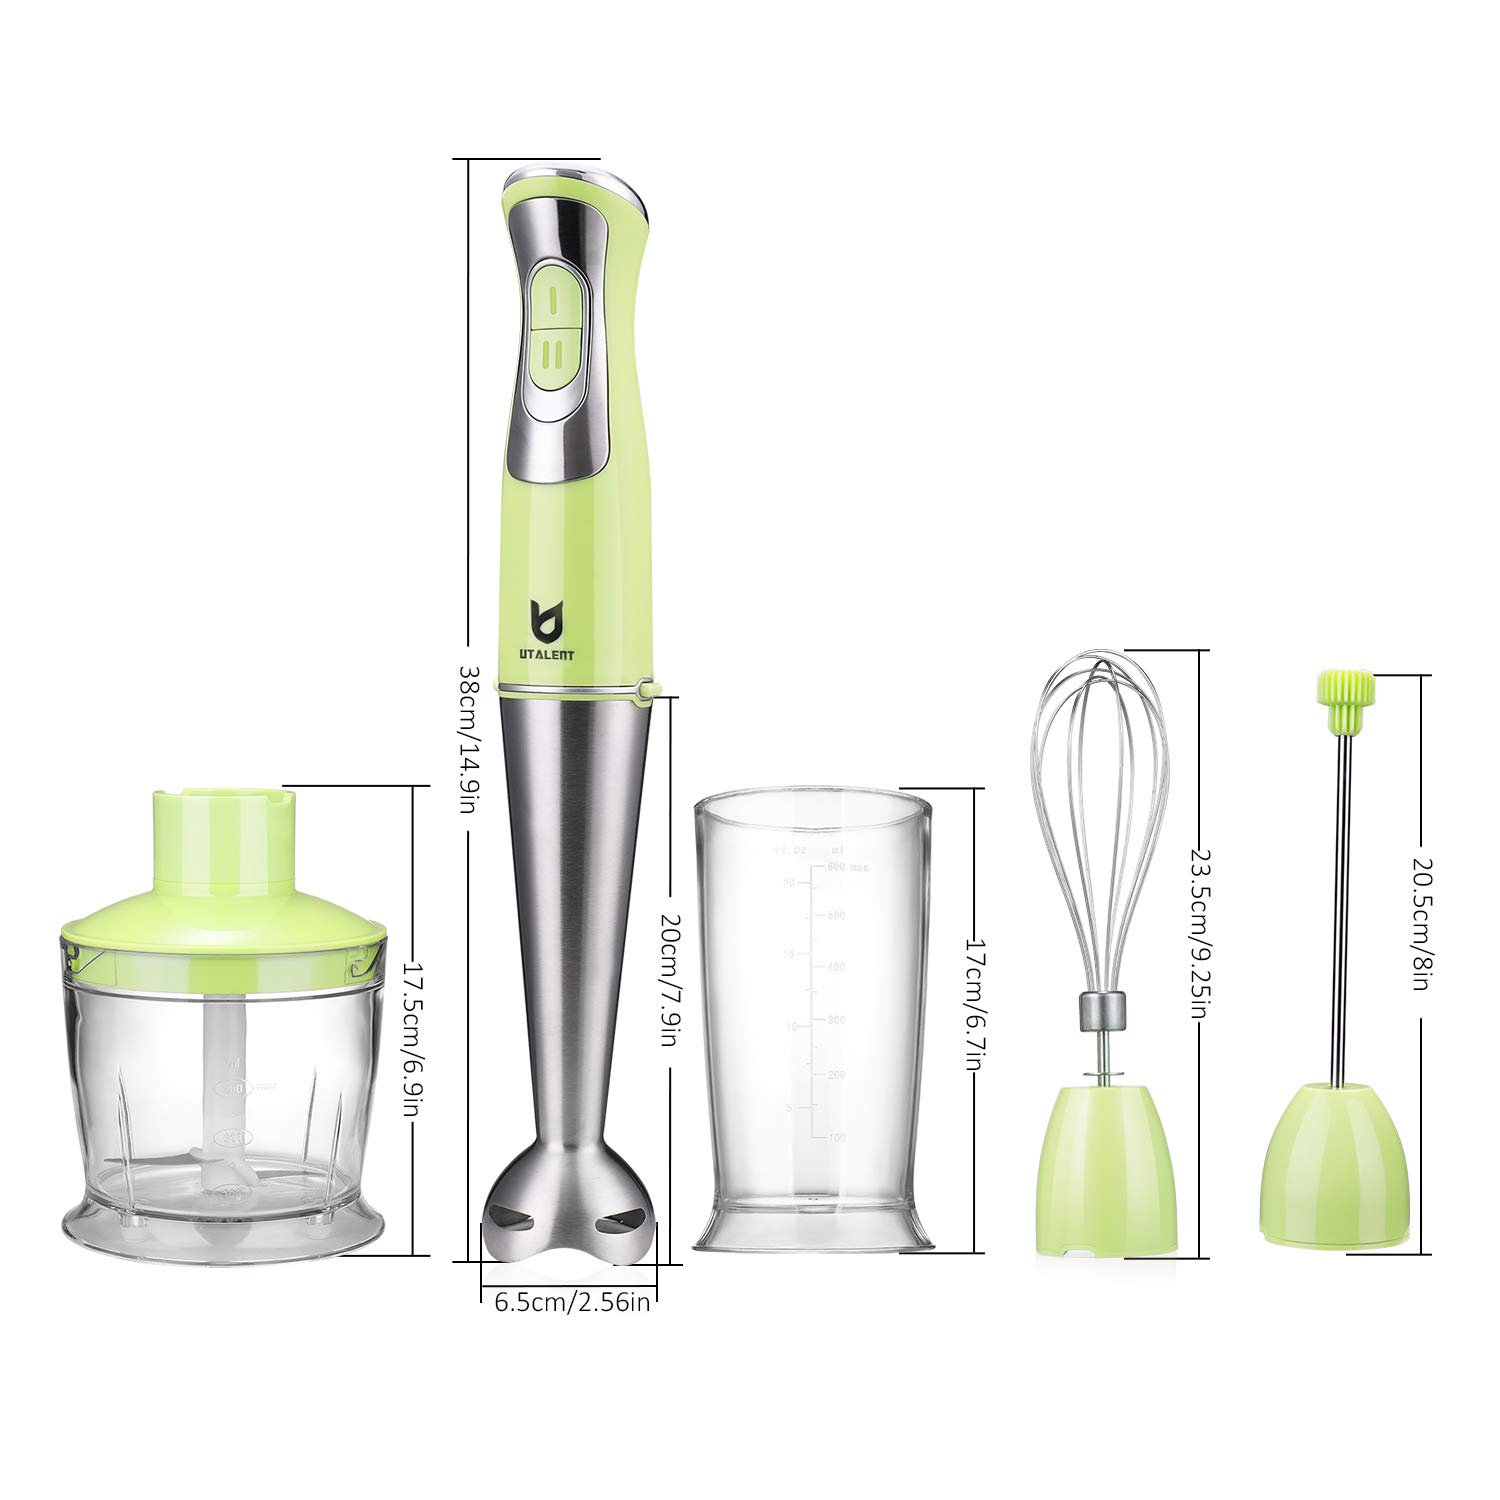 Puree Baby Food Egg Whisk for Coffee Milk Foam Green Smoothies Utalent 3-in-1 8-Speed Stick Blender with Milk Frother Immersion Hand Blender Sauces and Soups